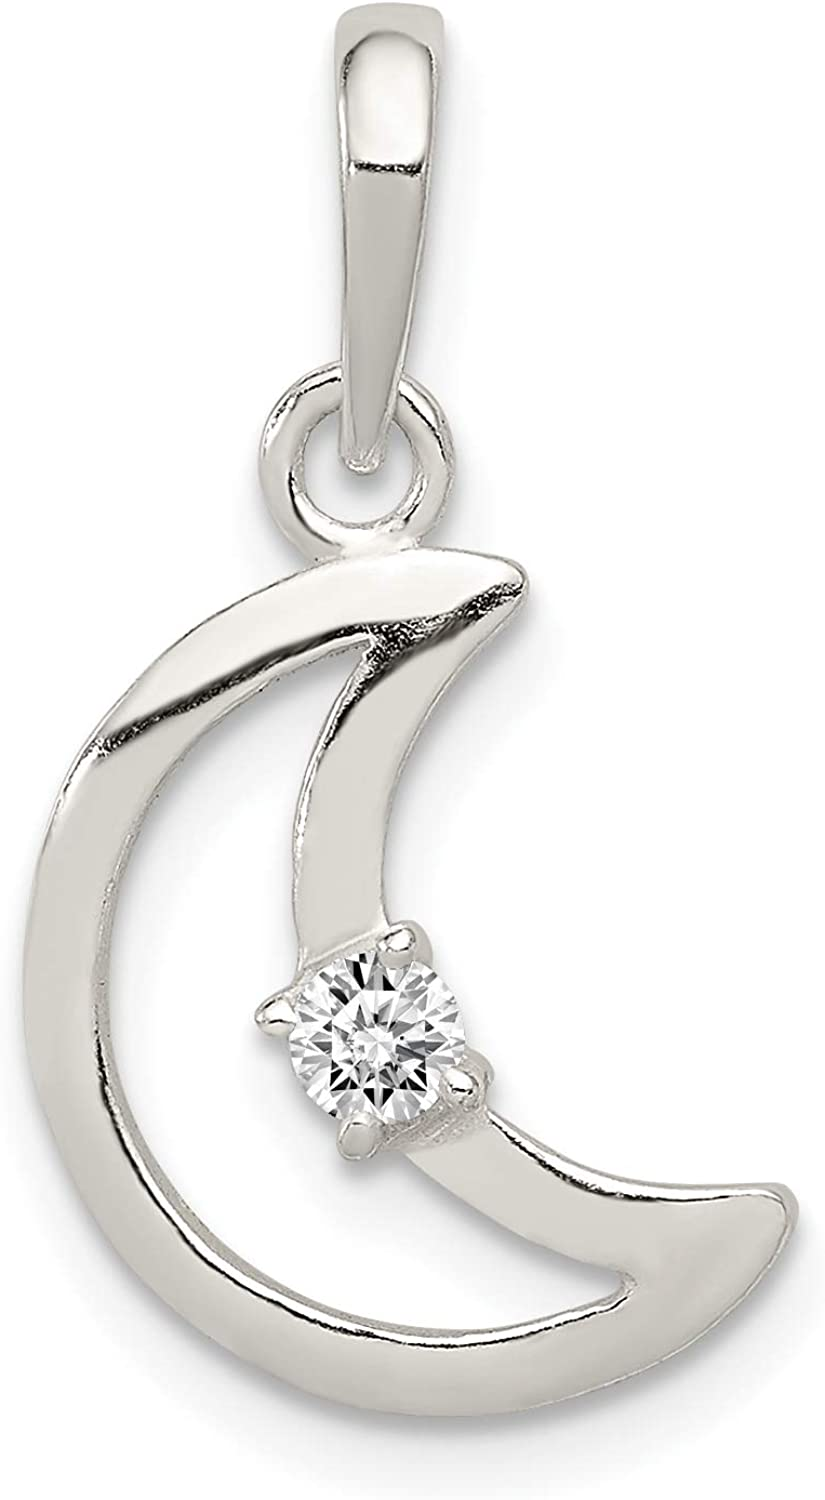 Sterling Silver CZ Polished Moon Pendant Solid 12 mm 25 mm Pendants /& Charms Jewelry